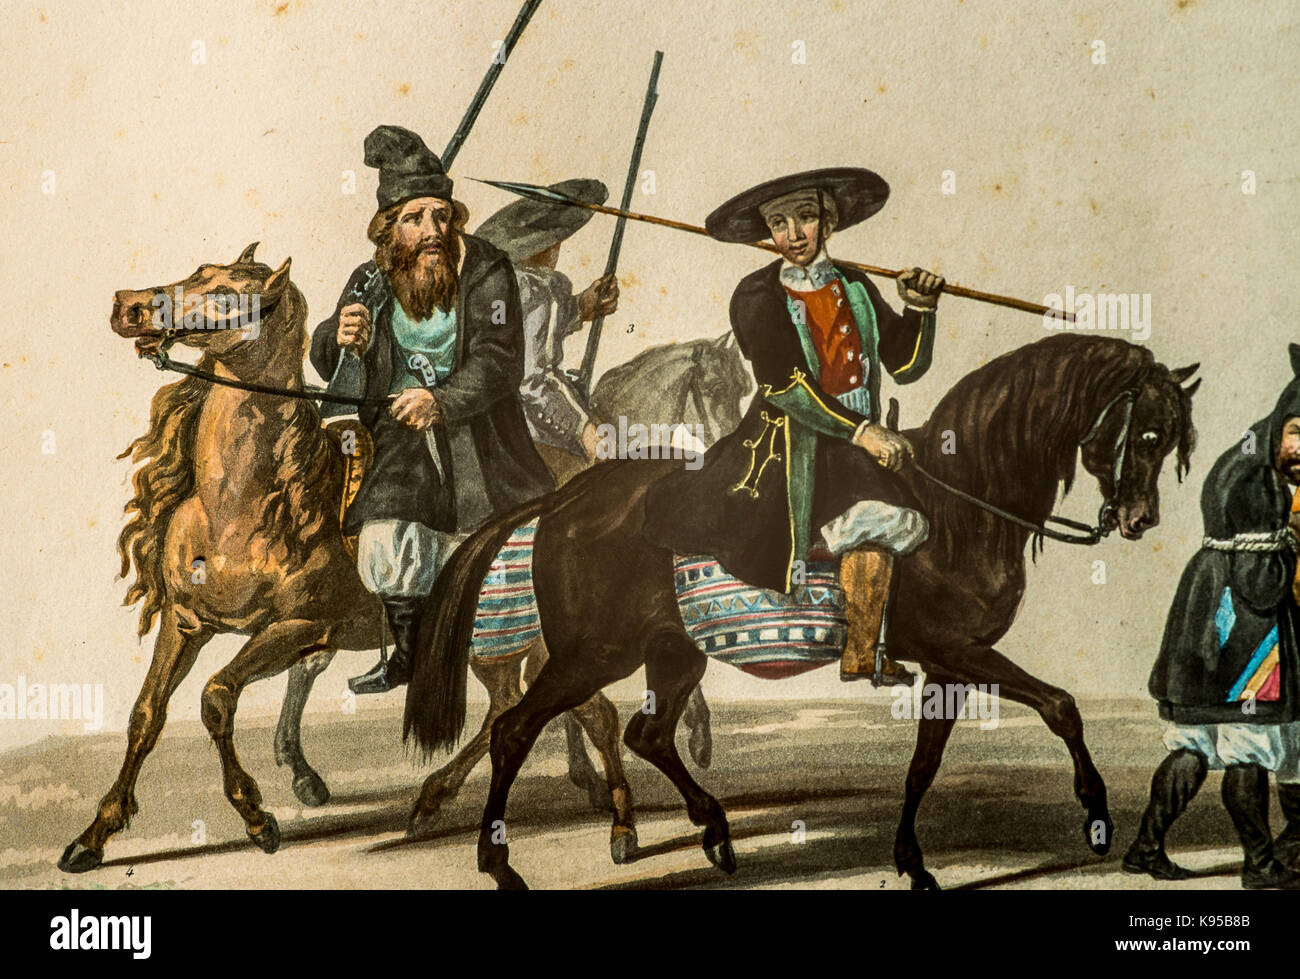 """Ancient Paint from the """"Voyage en Sardaigne"""" by La Marmora 1826 - Militants in service Stock Photo"""